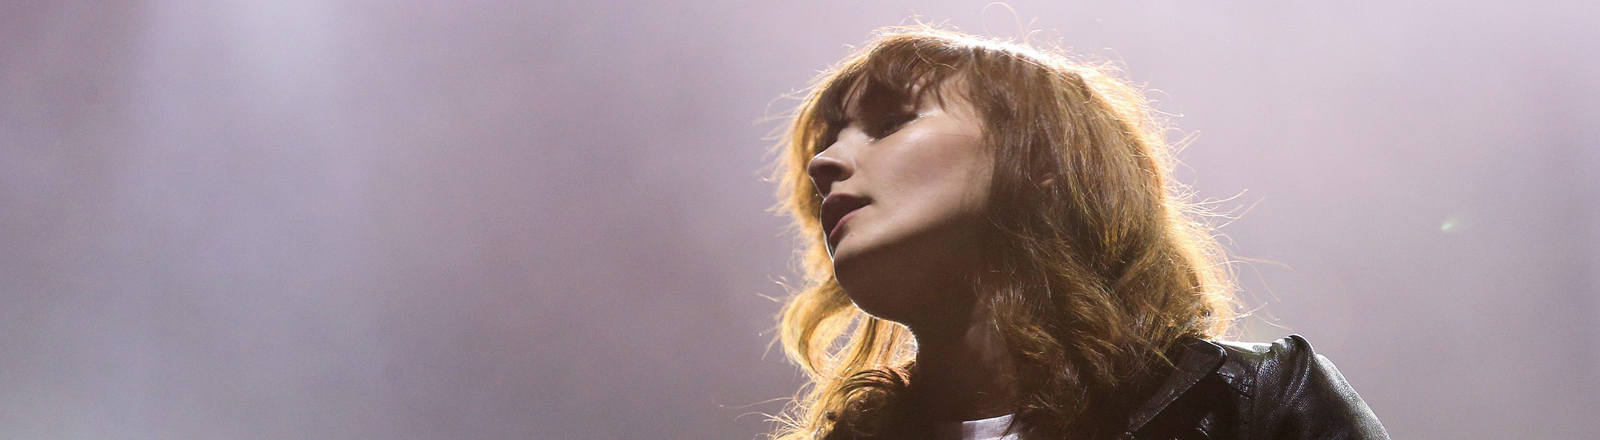 Chvrches-Sängerin Lauren Mayberry beim  Paredes de Coura Music Festival in Portugal.